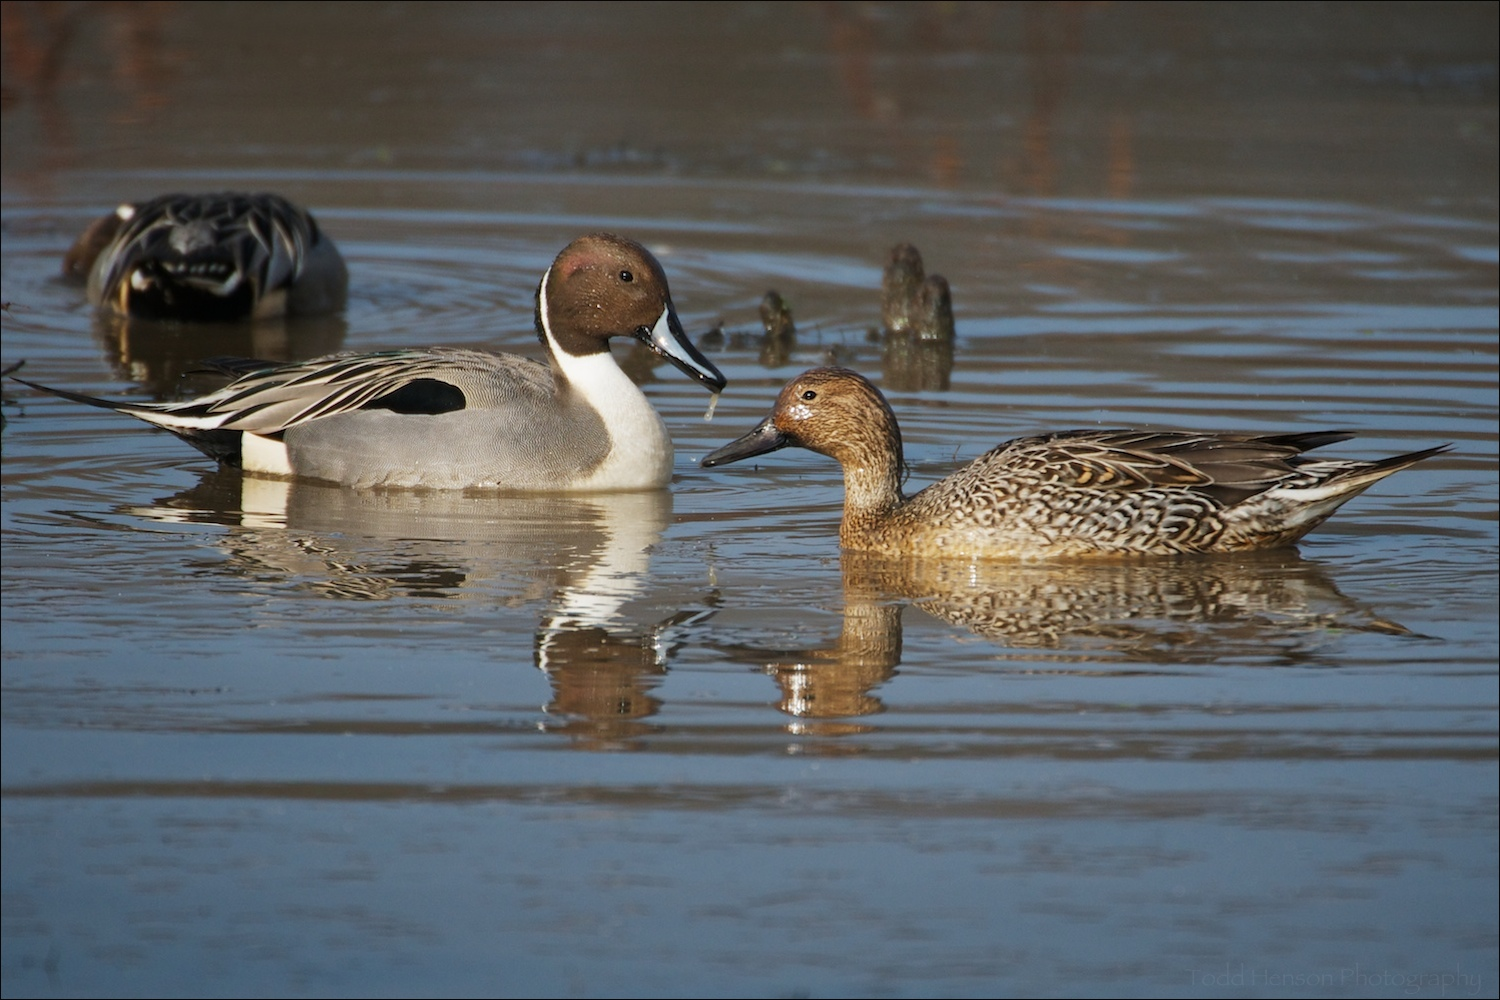 Male and female Northern Pintail in foreground with feeding male in background